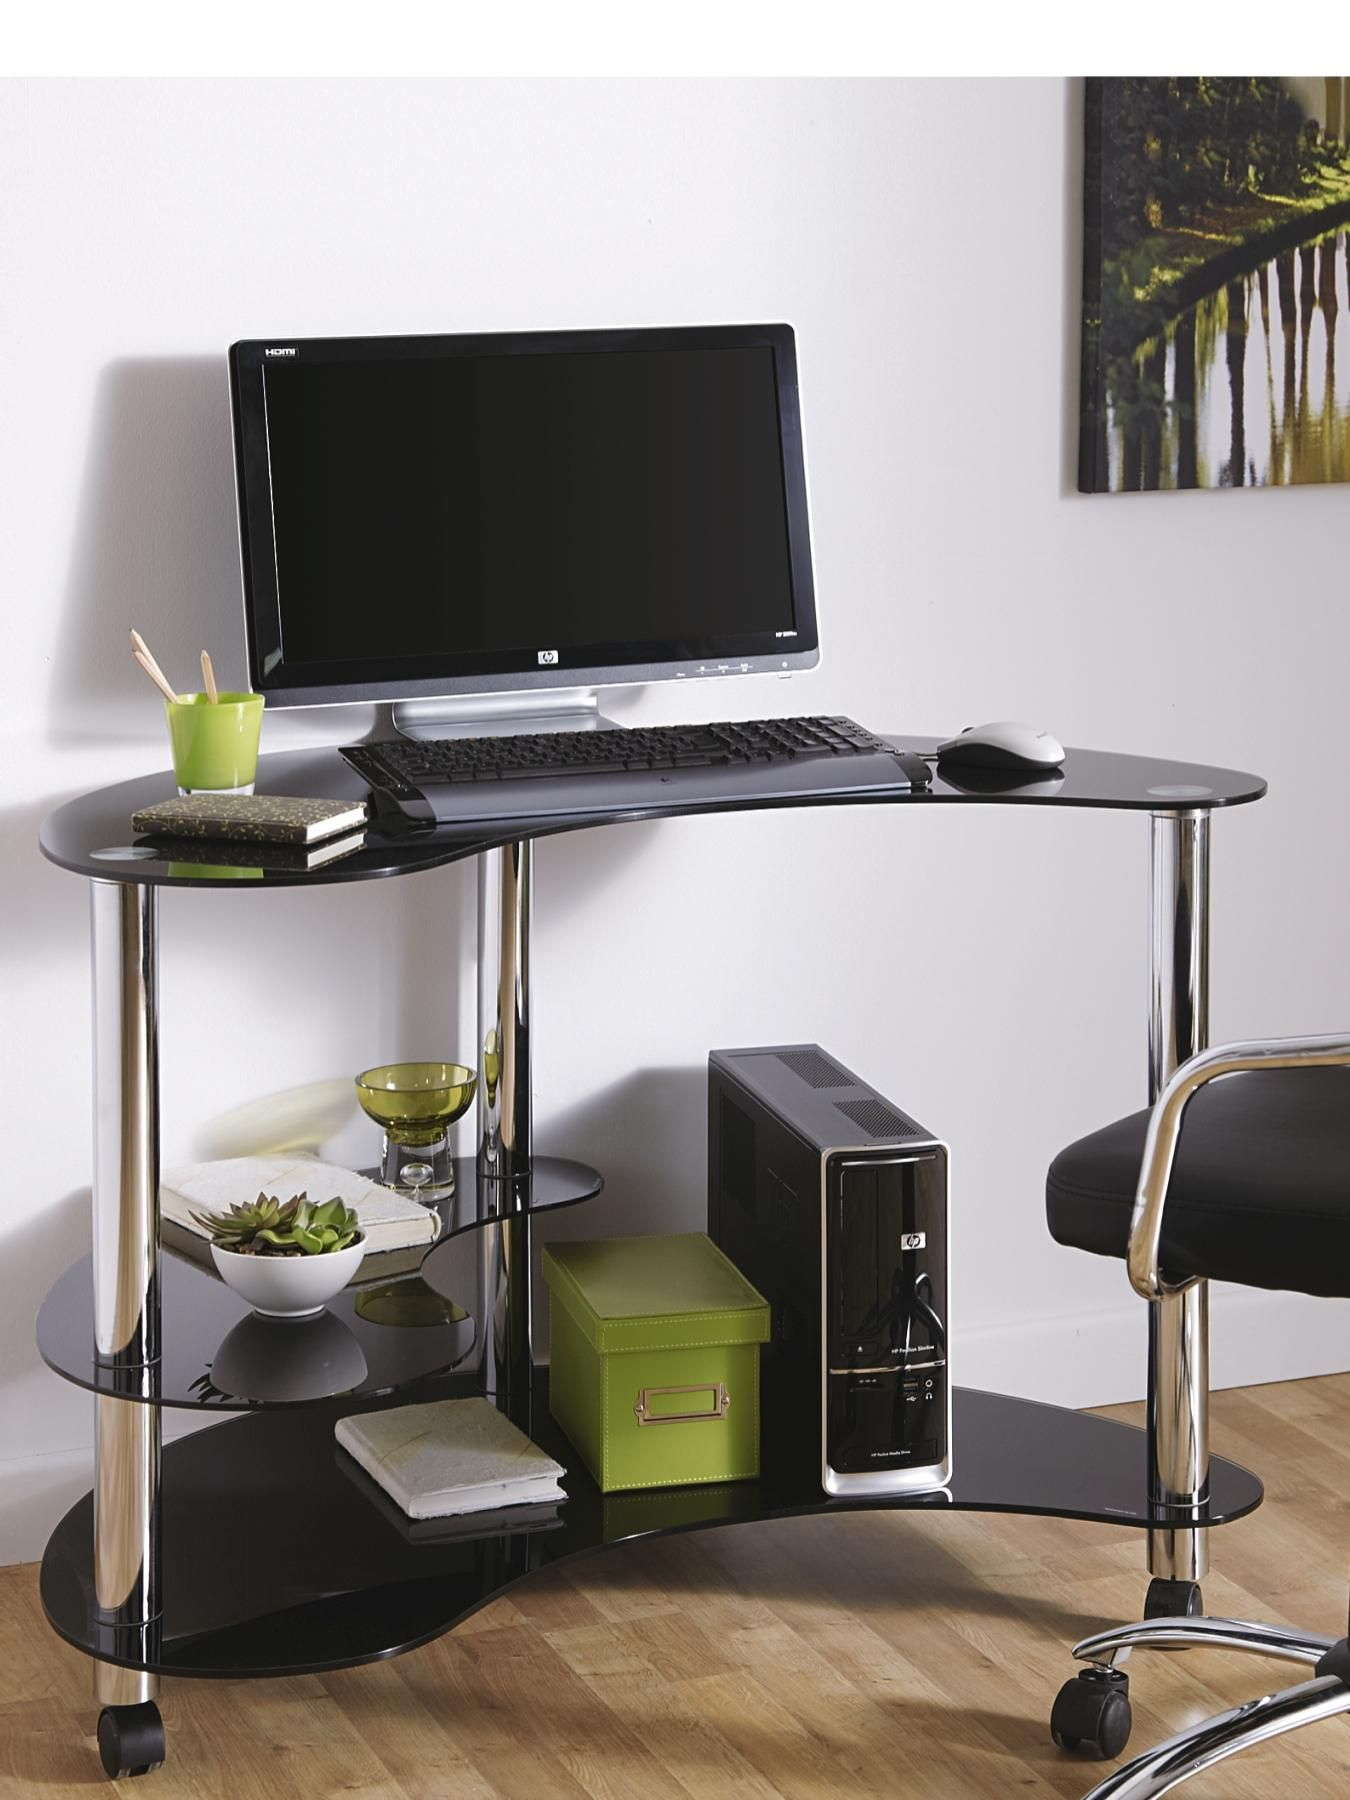 How to find a perfect cheap glass computer desk?